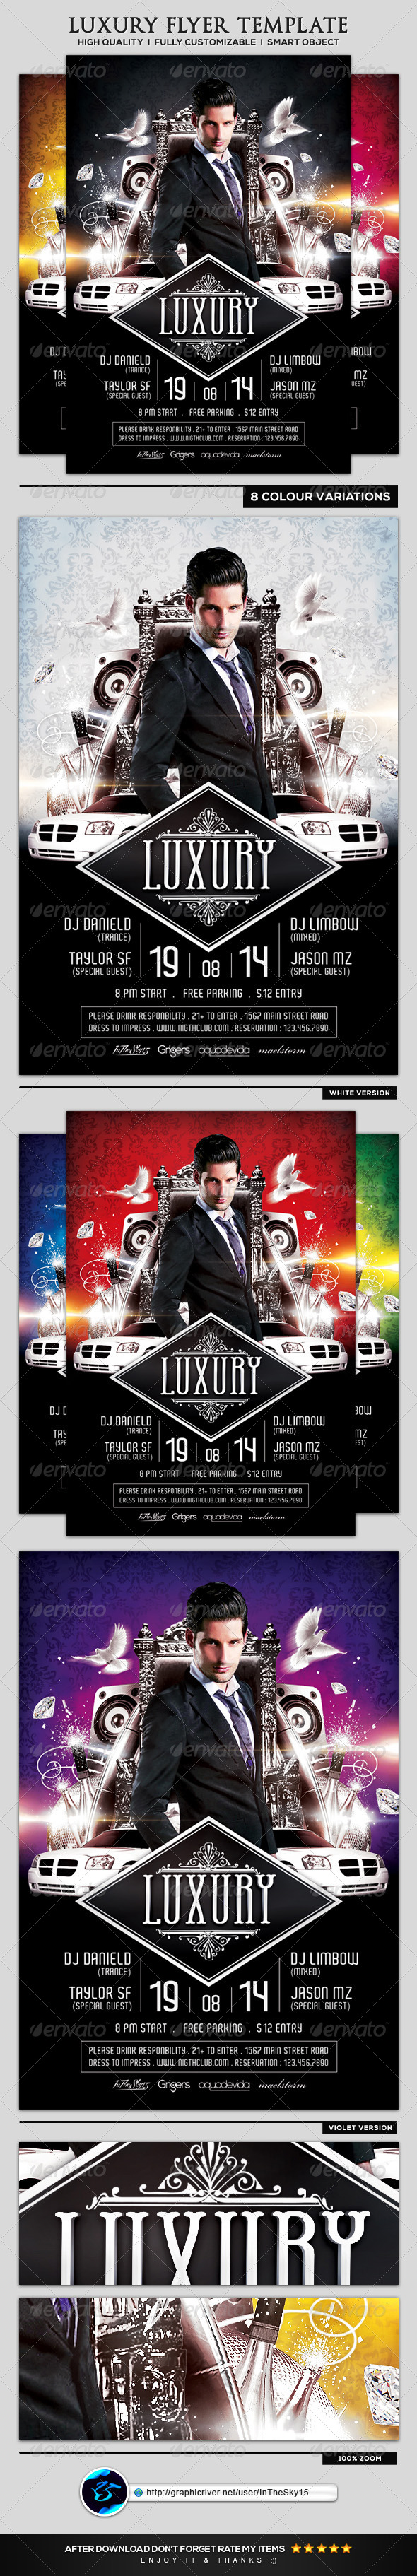 GraphicRiver Luxury Flyer Template 8339181